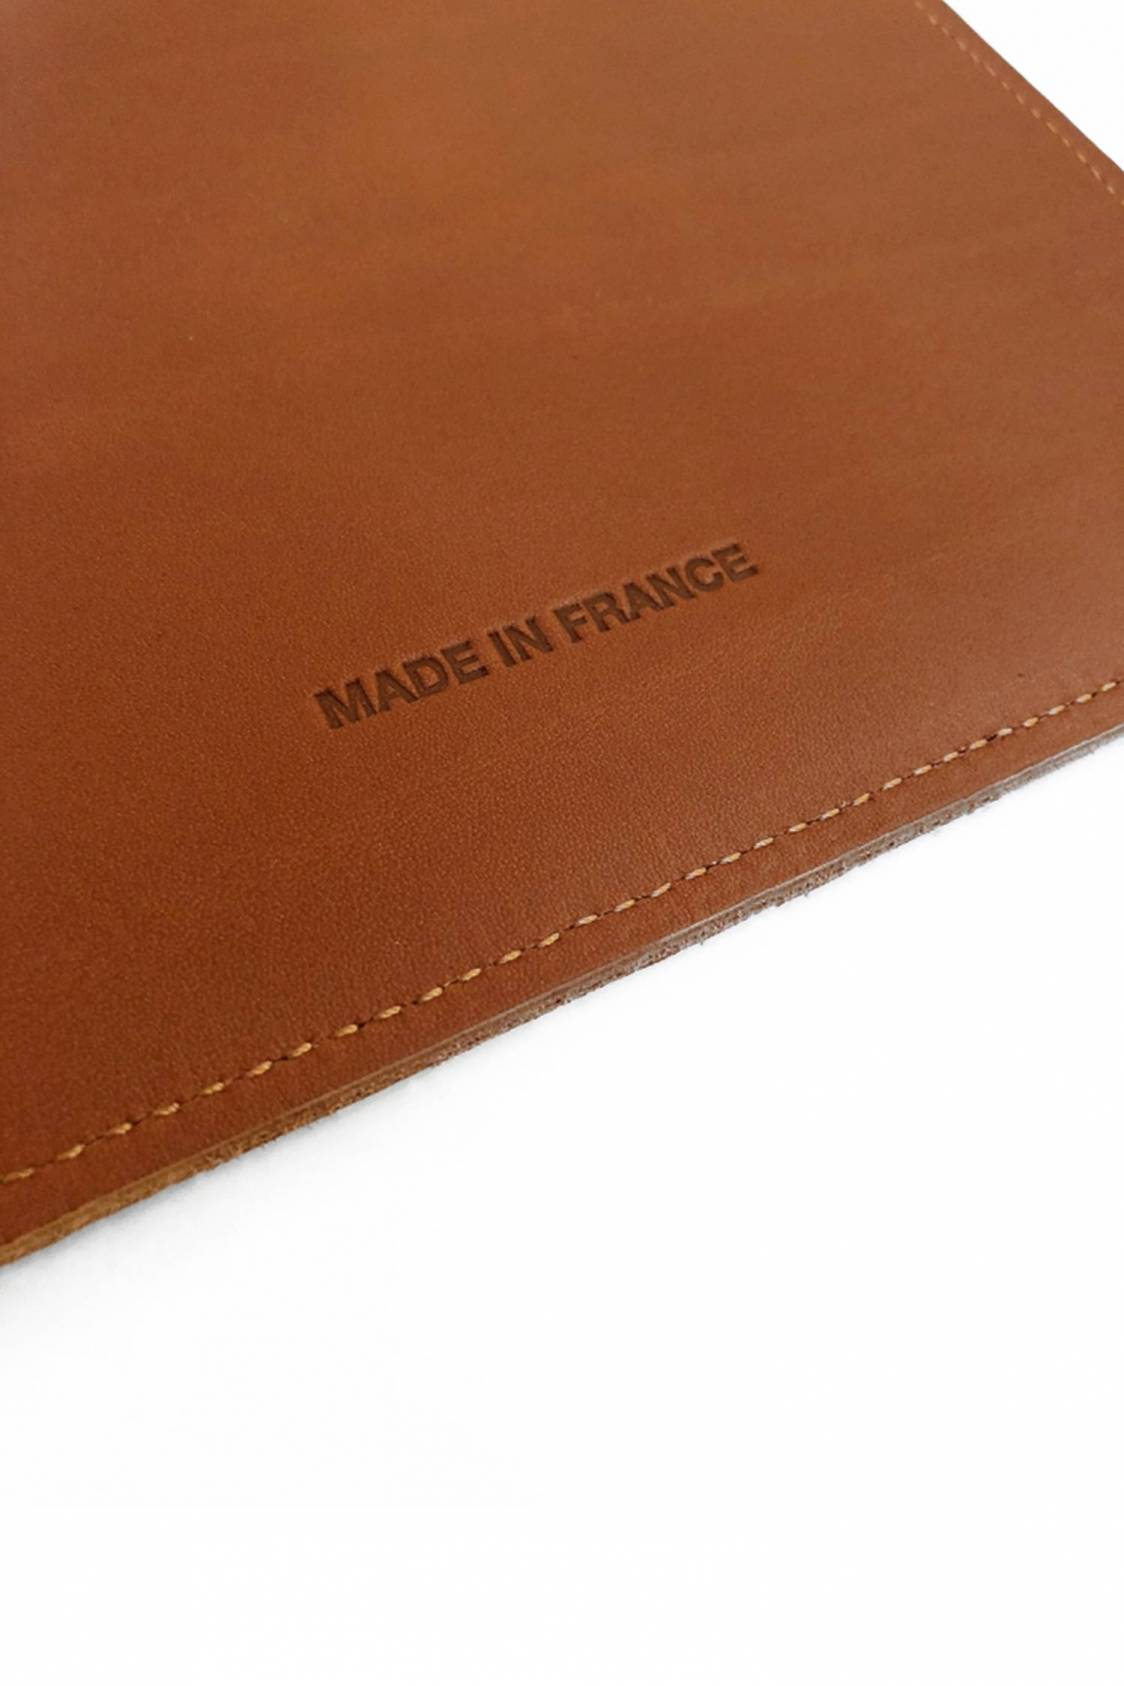 iPad Case in leather